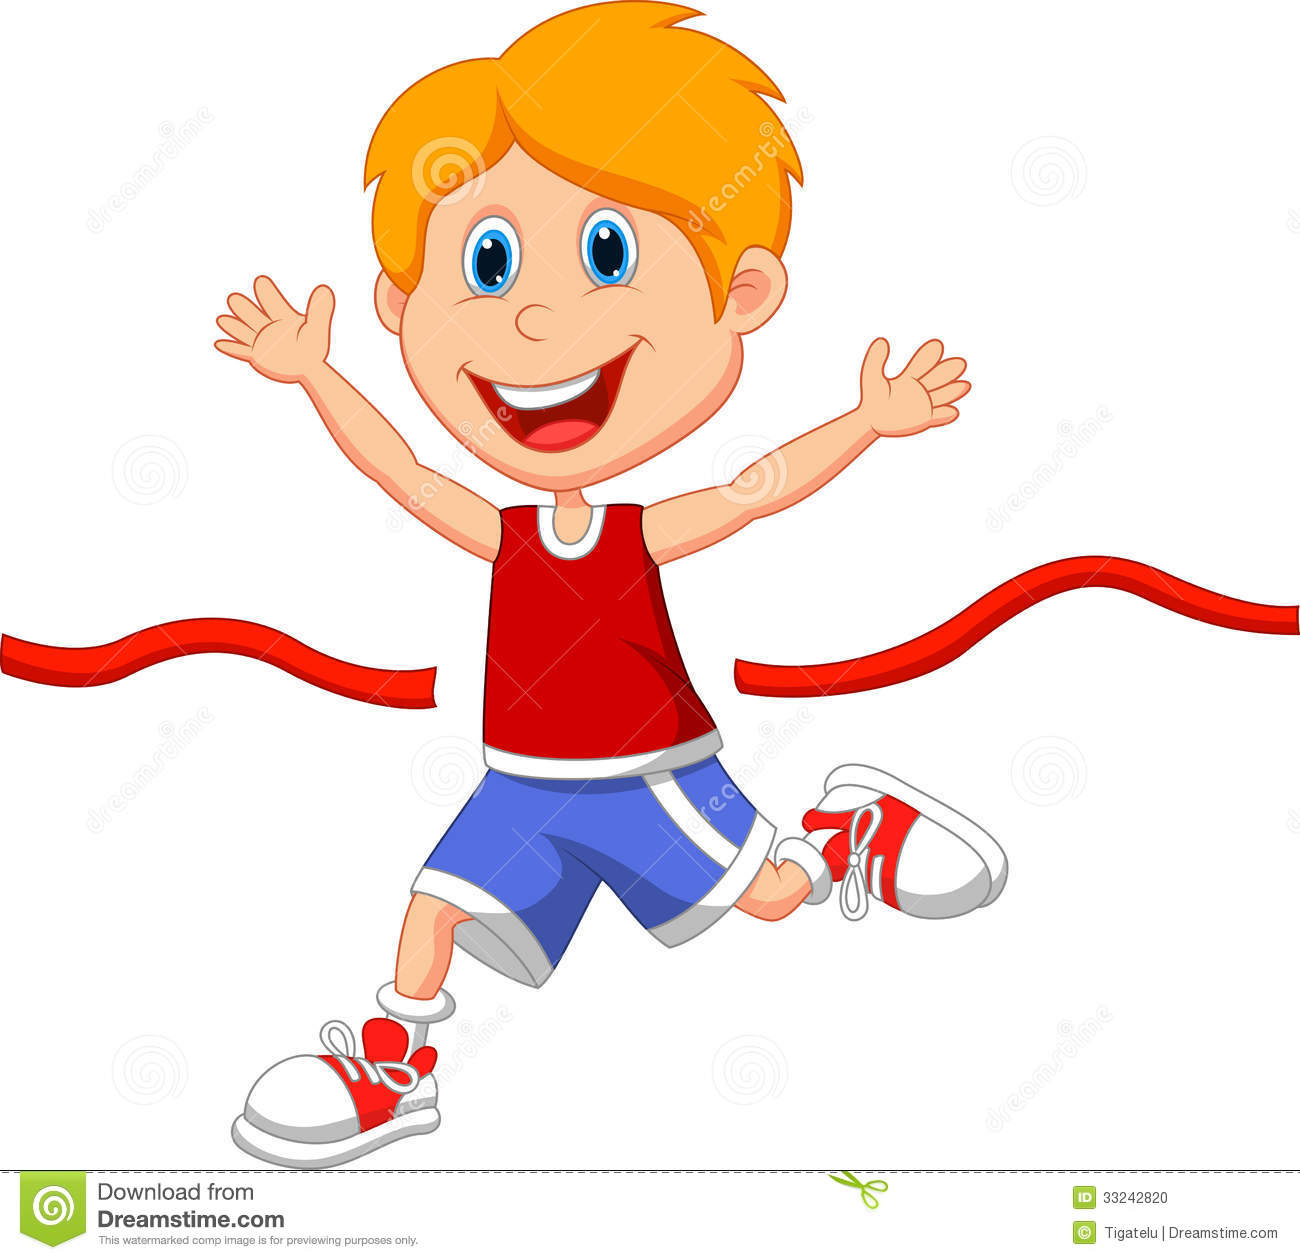 Clipart boy crossing finish line.